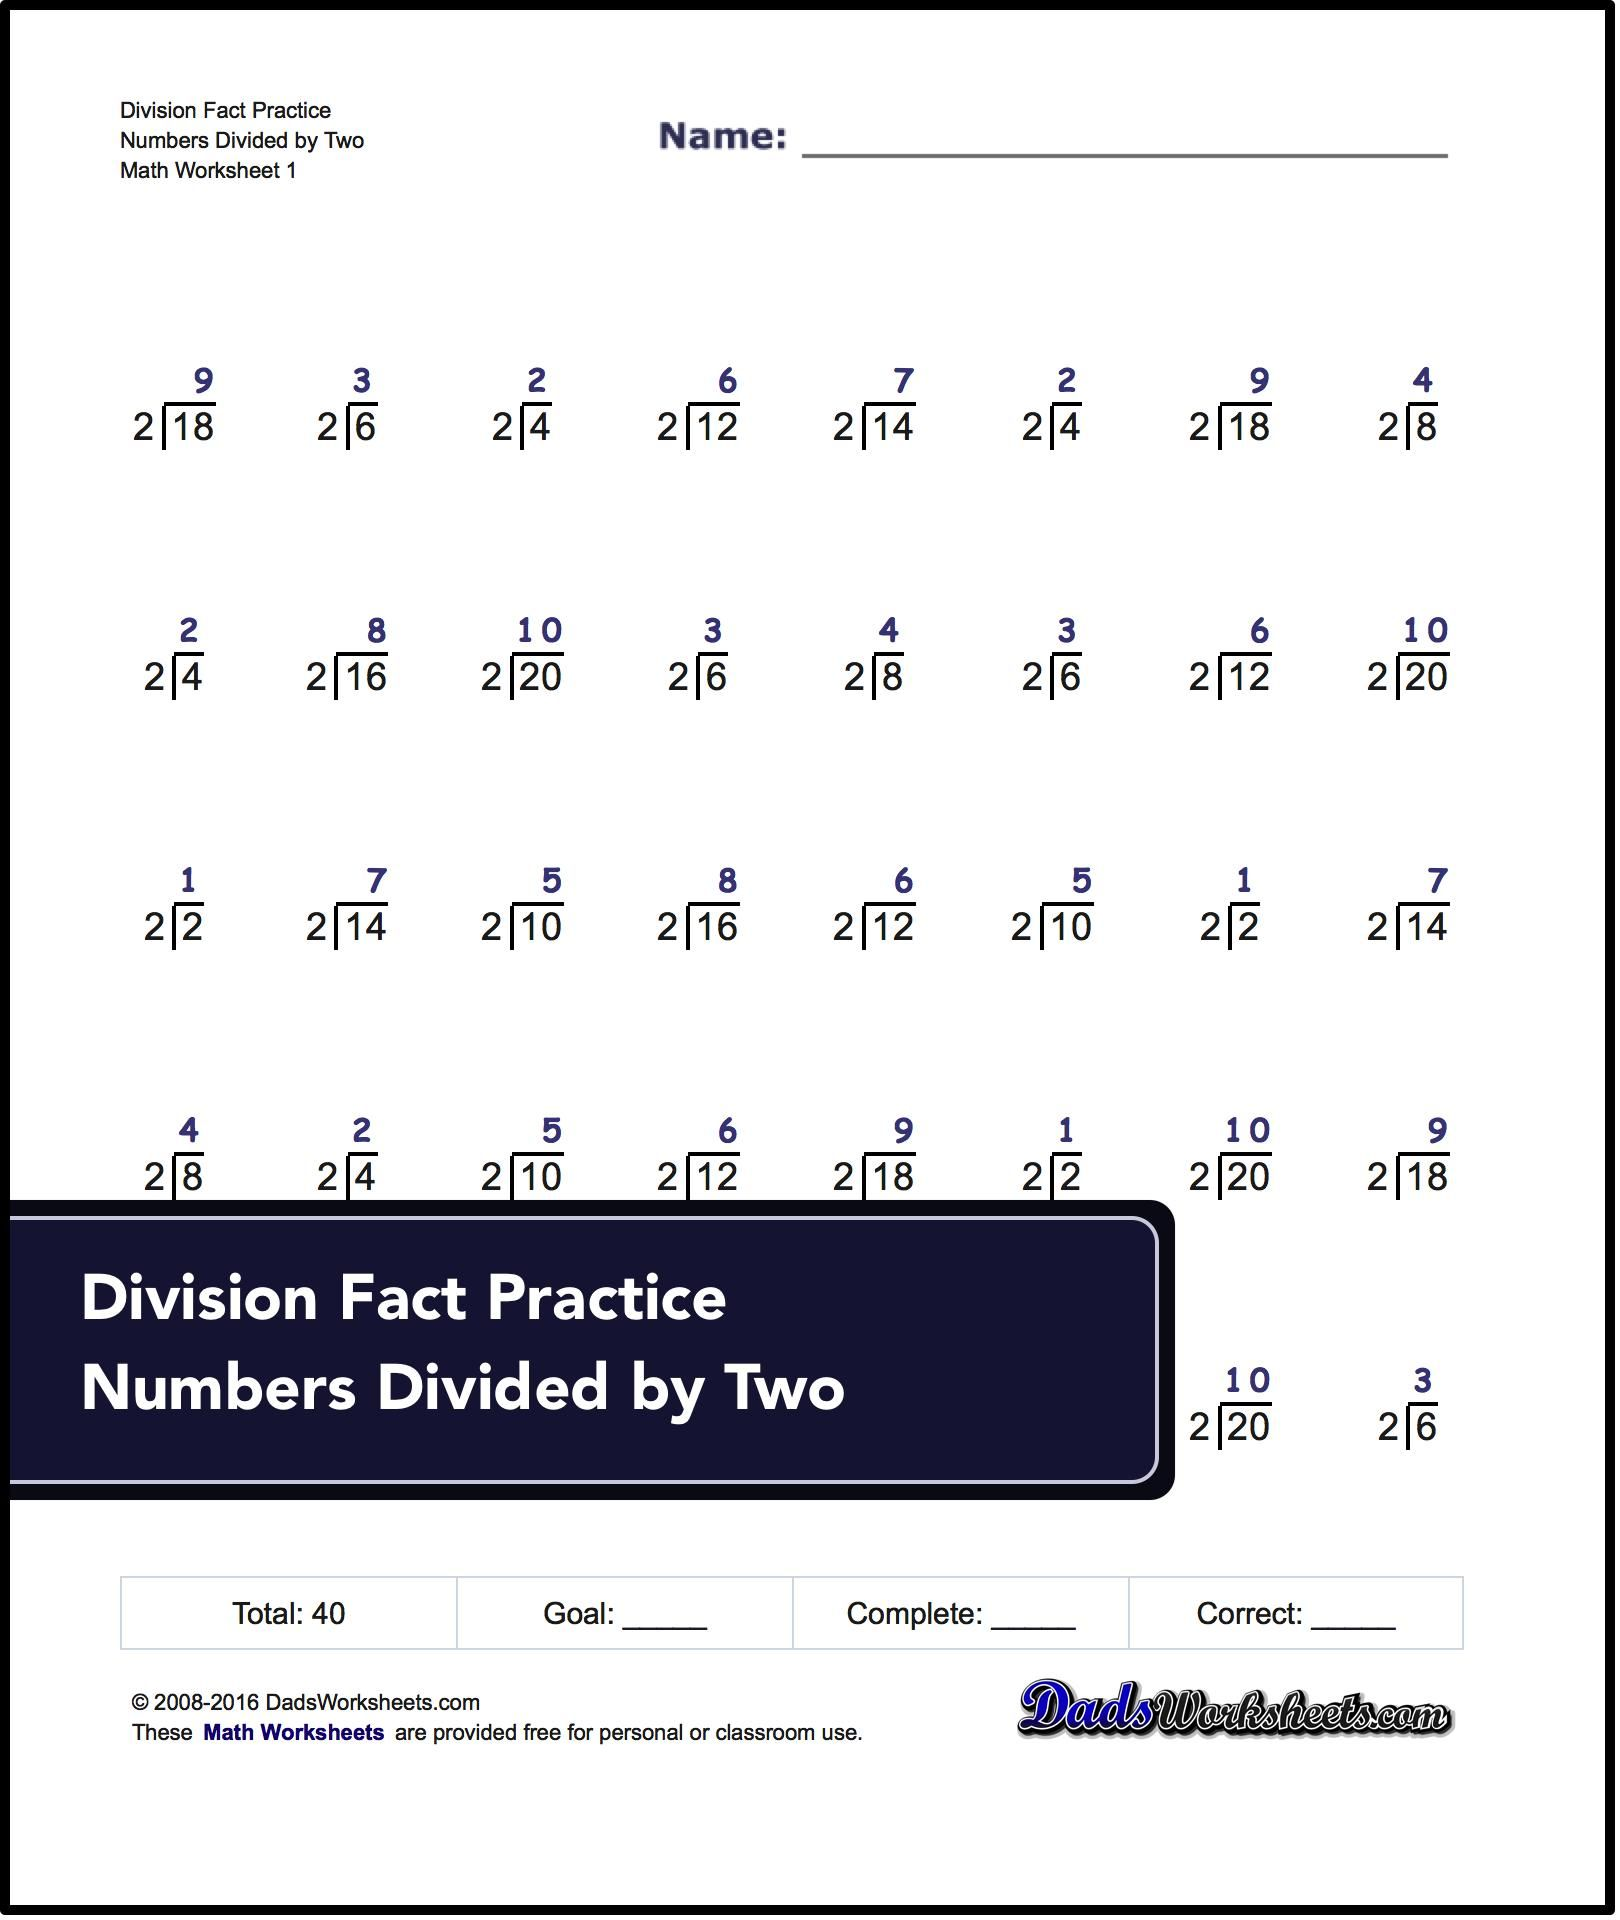 Basic Practice Division Worksheets Designed To Work As One Minute Timed Tests Or Exercise For